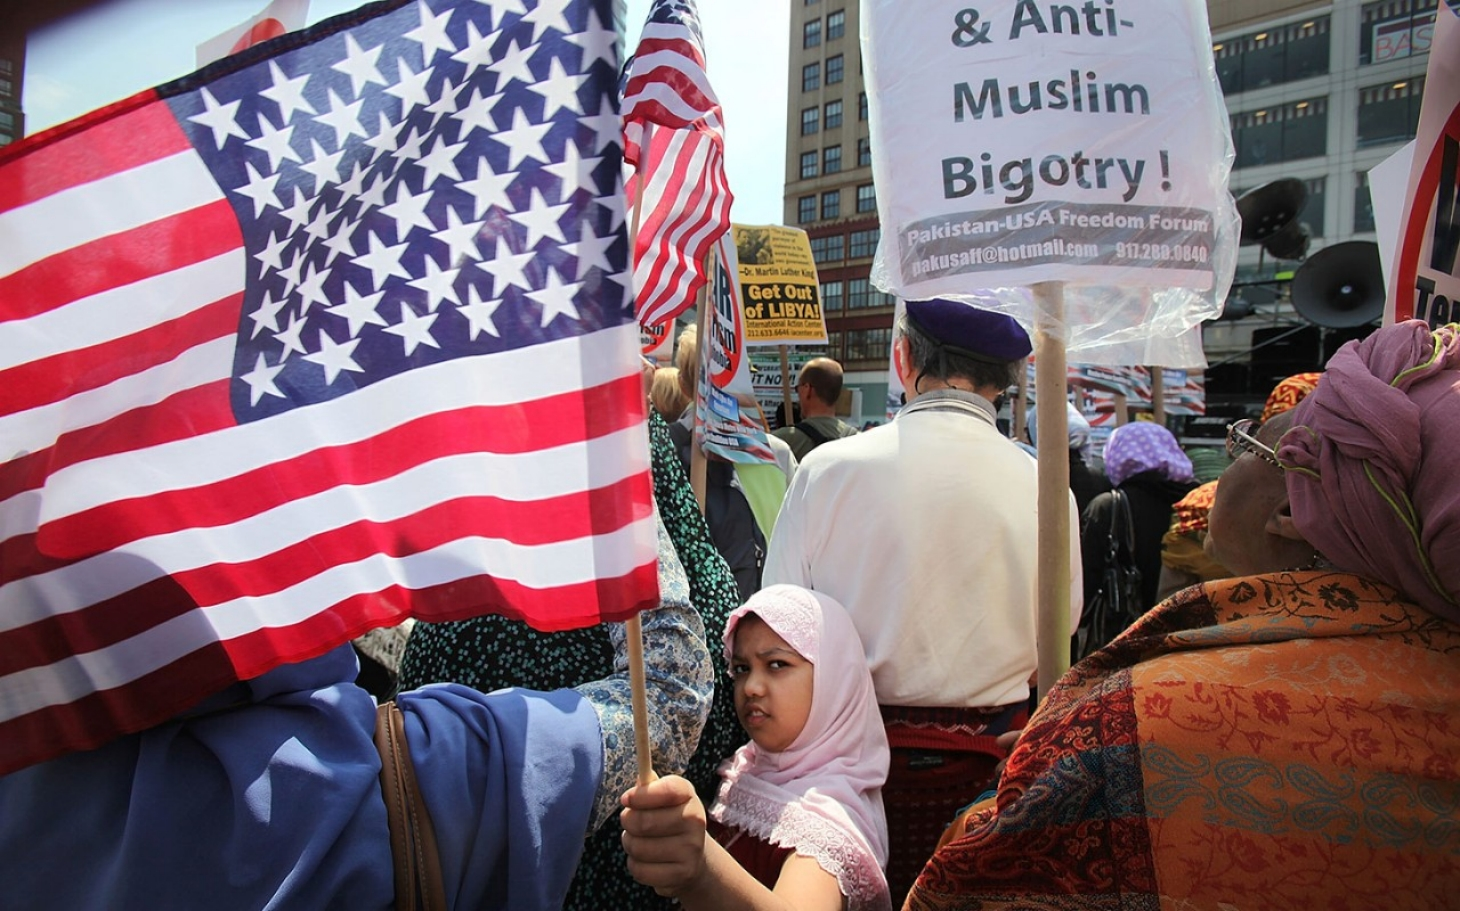 being muslim in america essay Essay on islam in america - introduction islam, a religion of people submitting to one god, seeking peace and a way of life without sin, is always misunderstood.